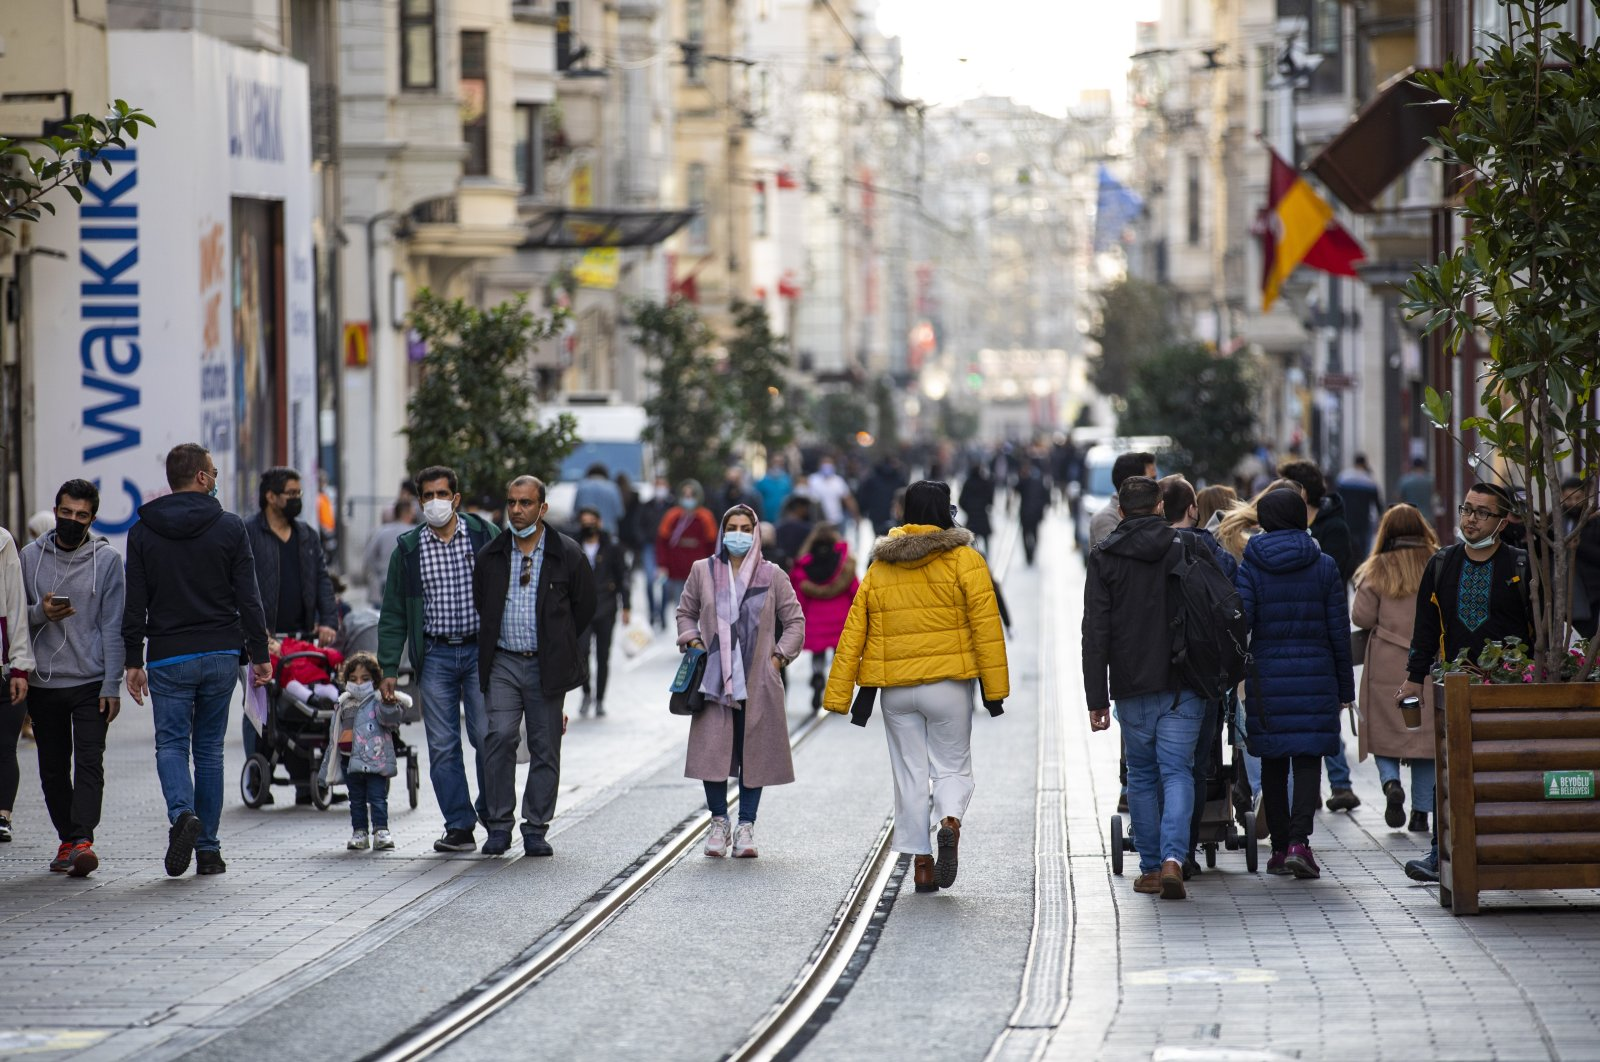 Tourists walk on Istiklal Avenue, one of the main shopping streets in Istanbul, Turkey, during a lockdown, Jan. 2, 2021. (AA Photo)